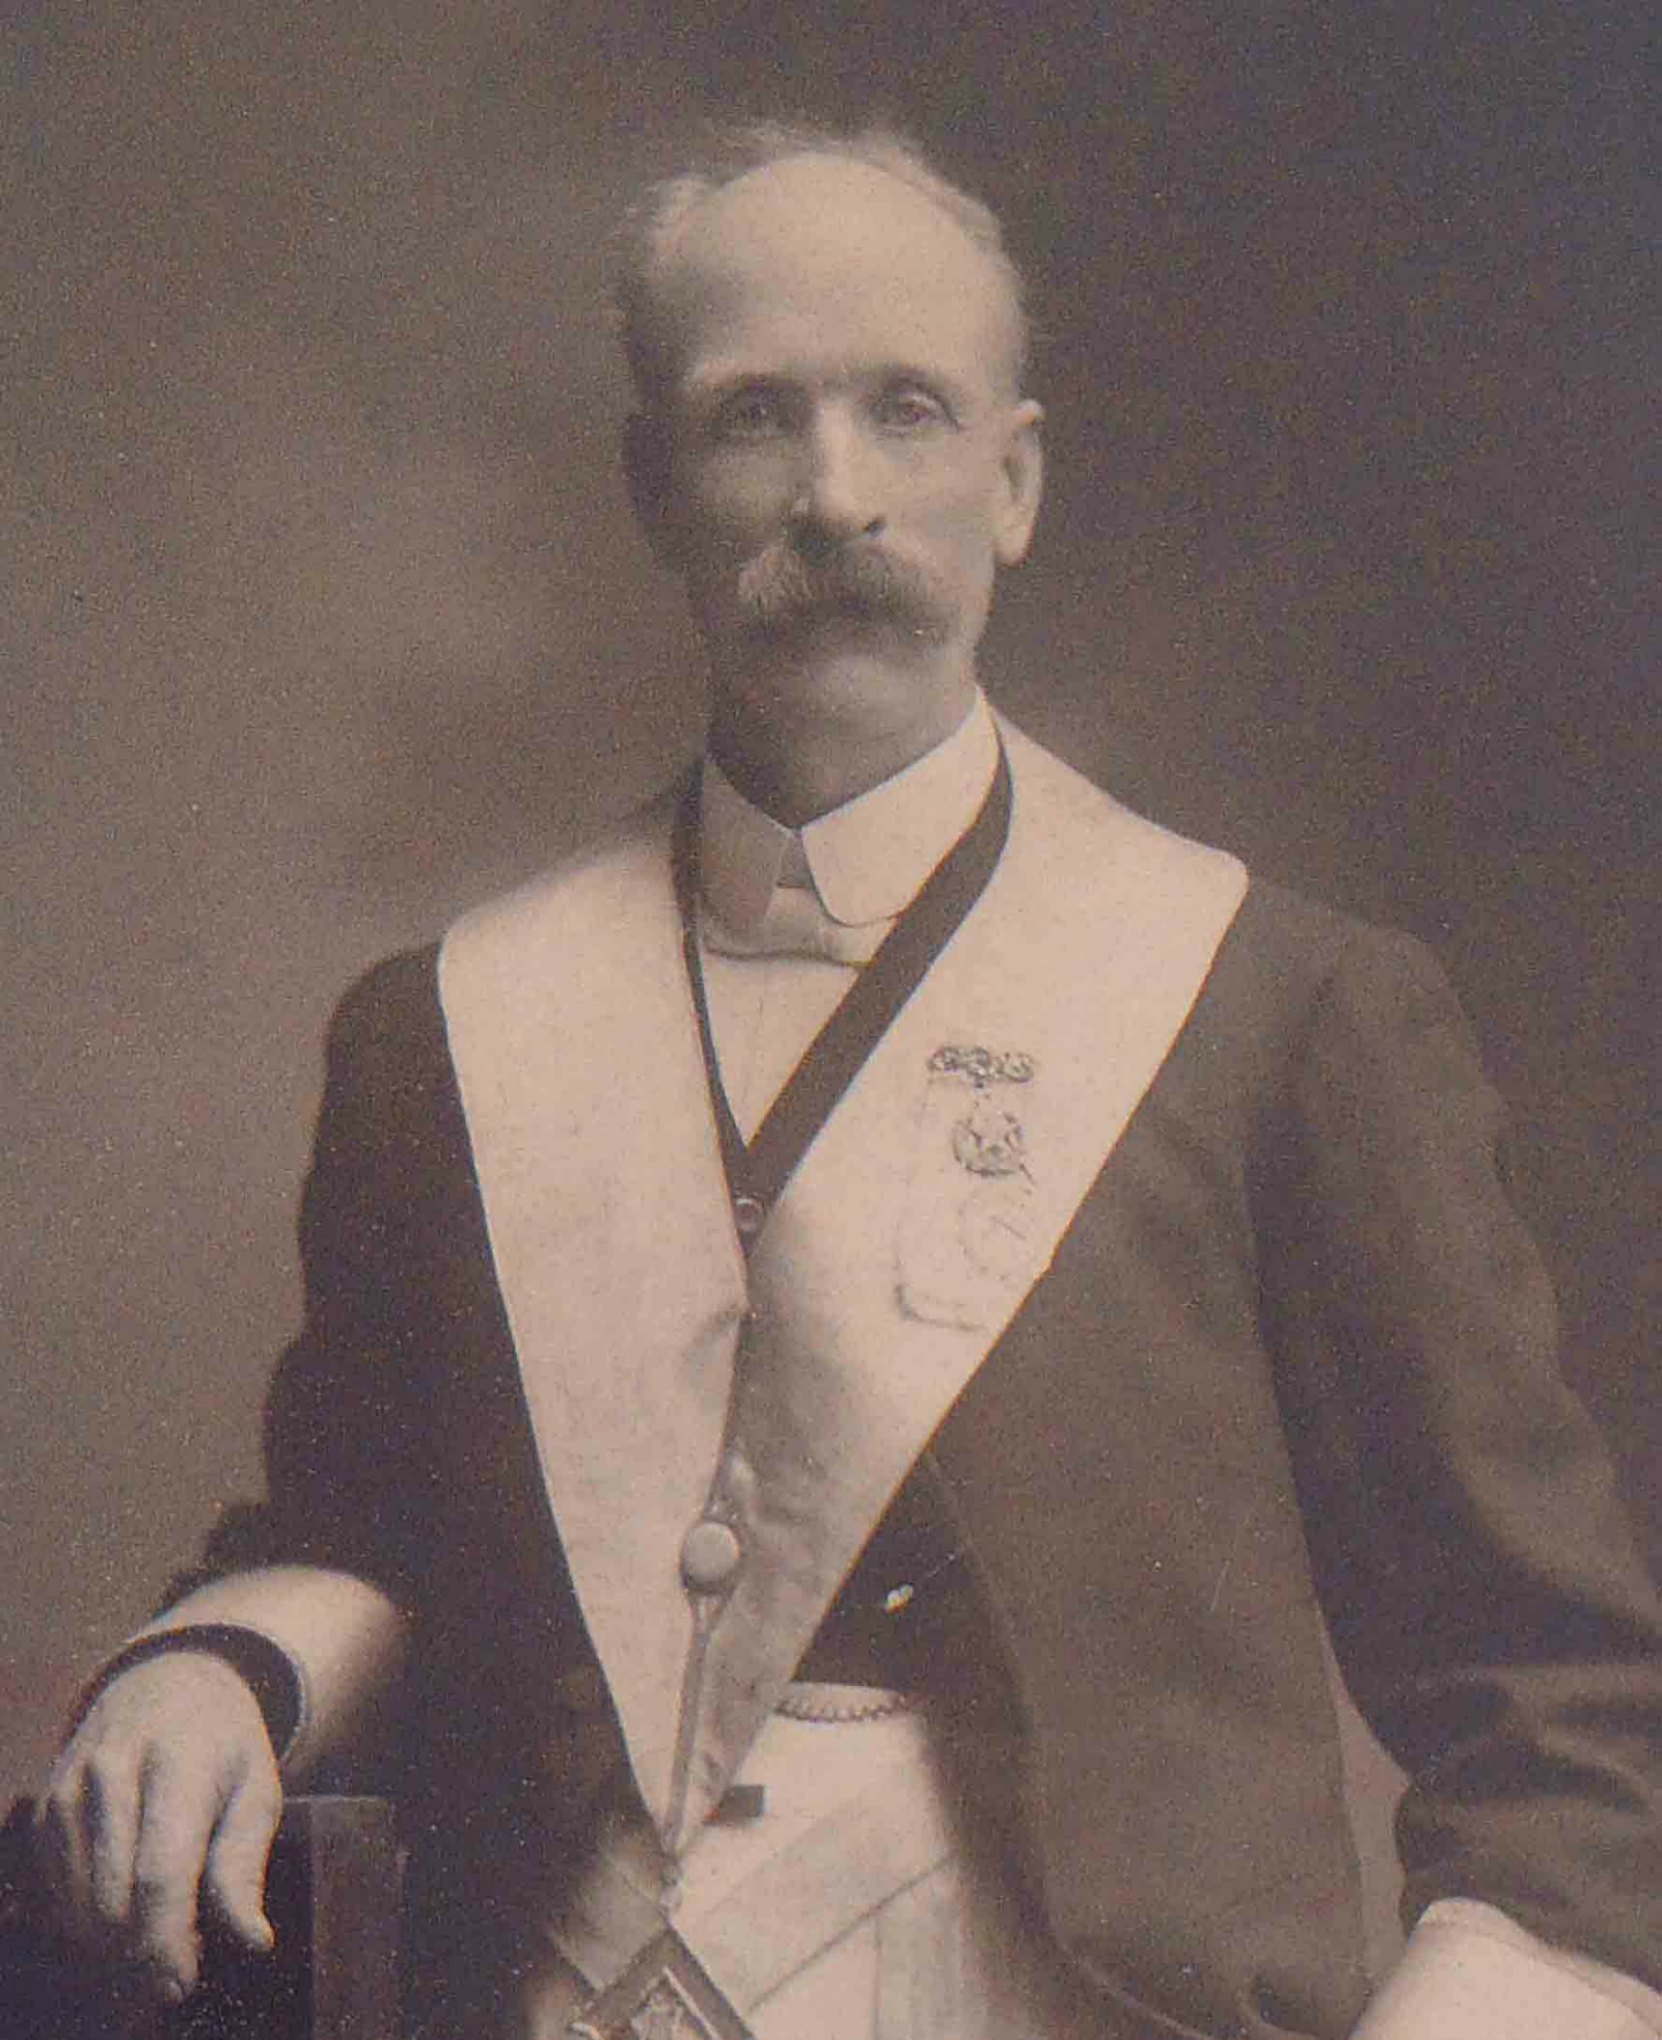 Samuel Robinson in Masonic regalia, circa 1902 (Photo courtesy of Temple Lodge, No.33 A.F.&A.M.)